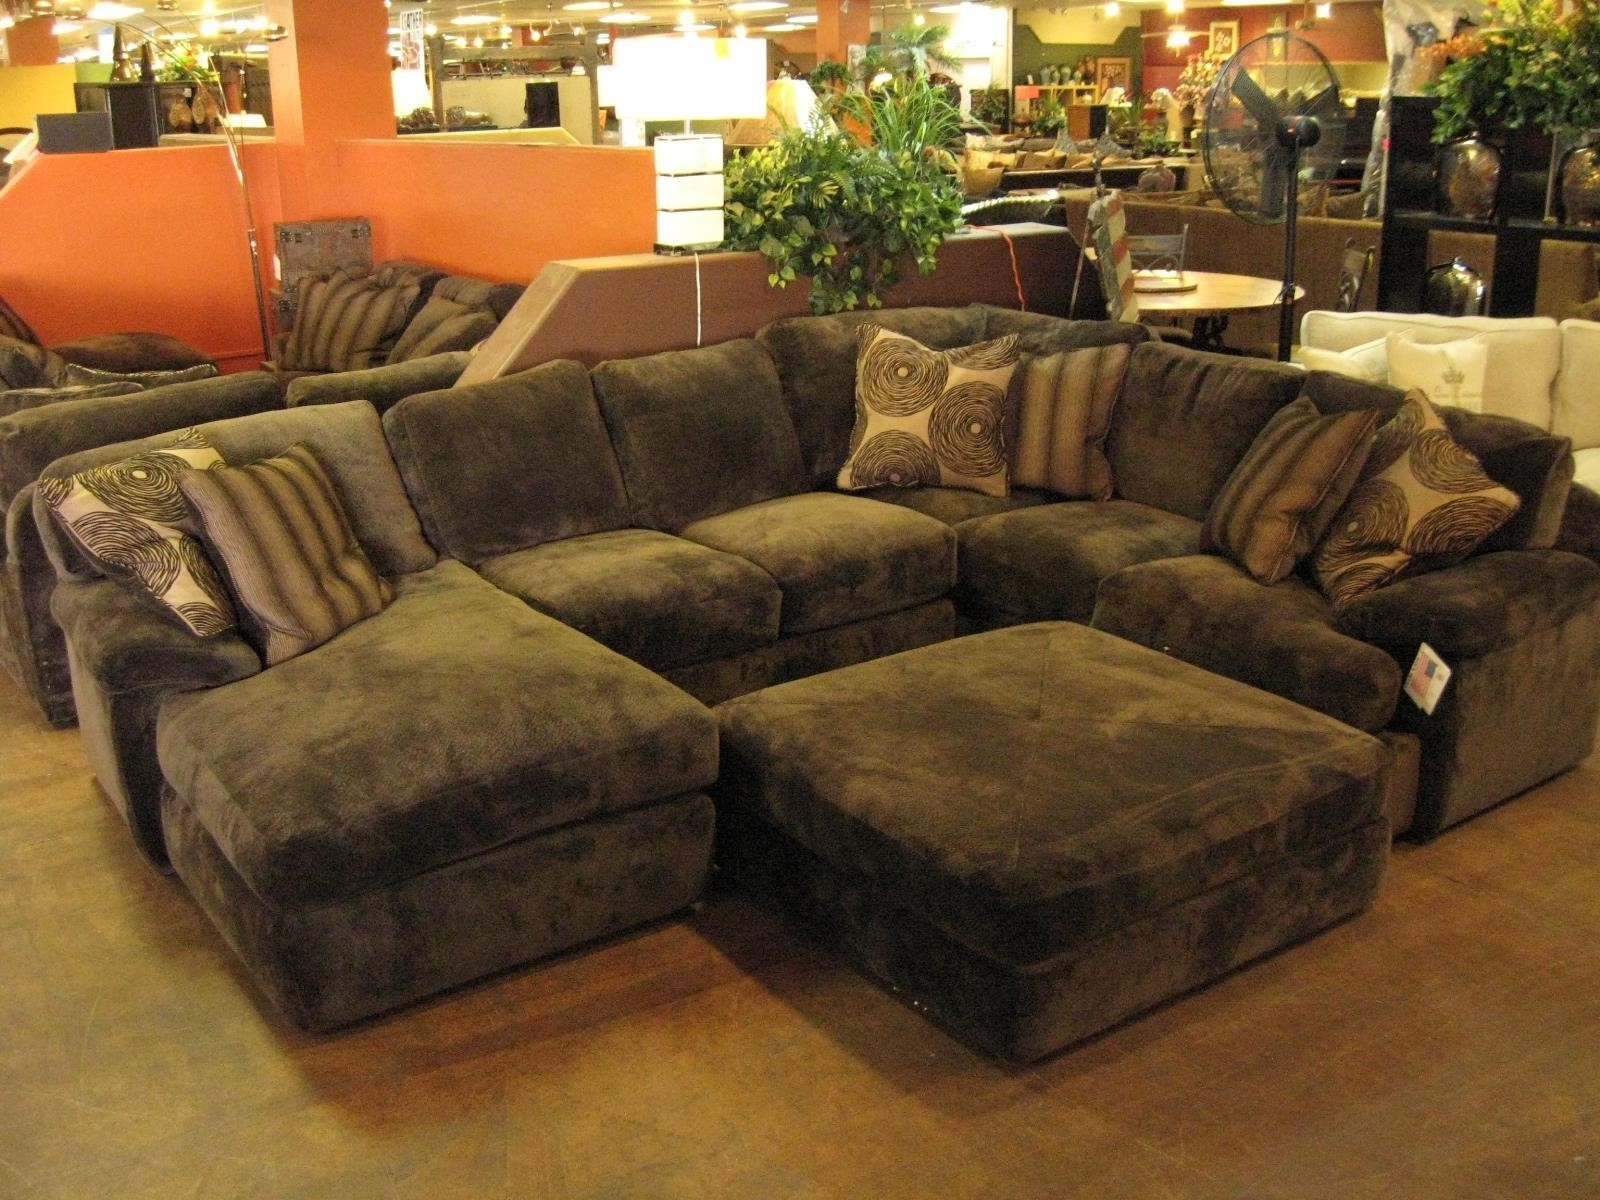 Sofa ~ Comfy Deep Couches And Sofas In Favorite Sofa Sectionals With Chaise (View 5 of 15)